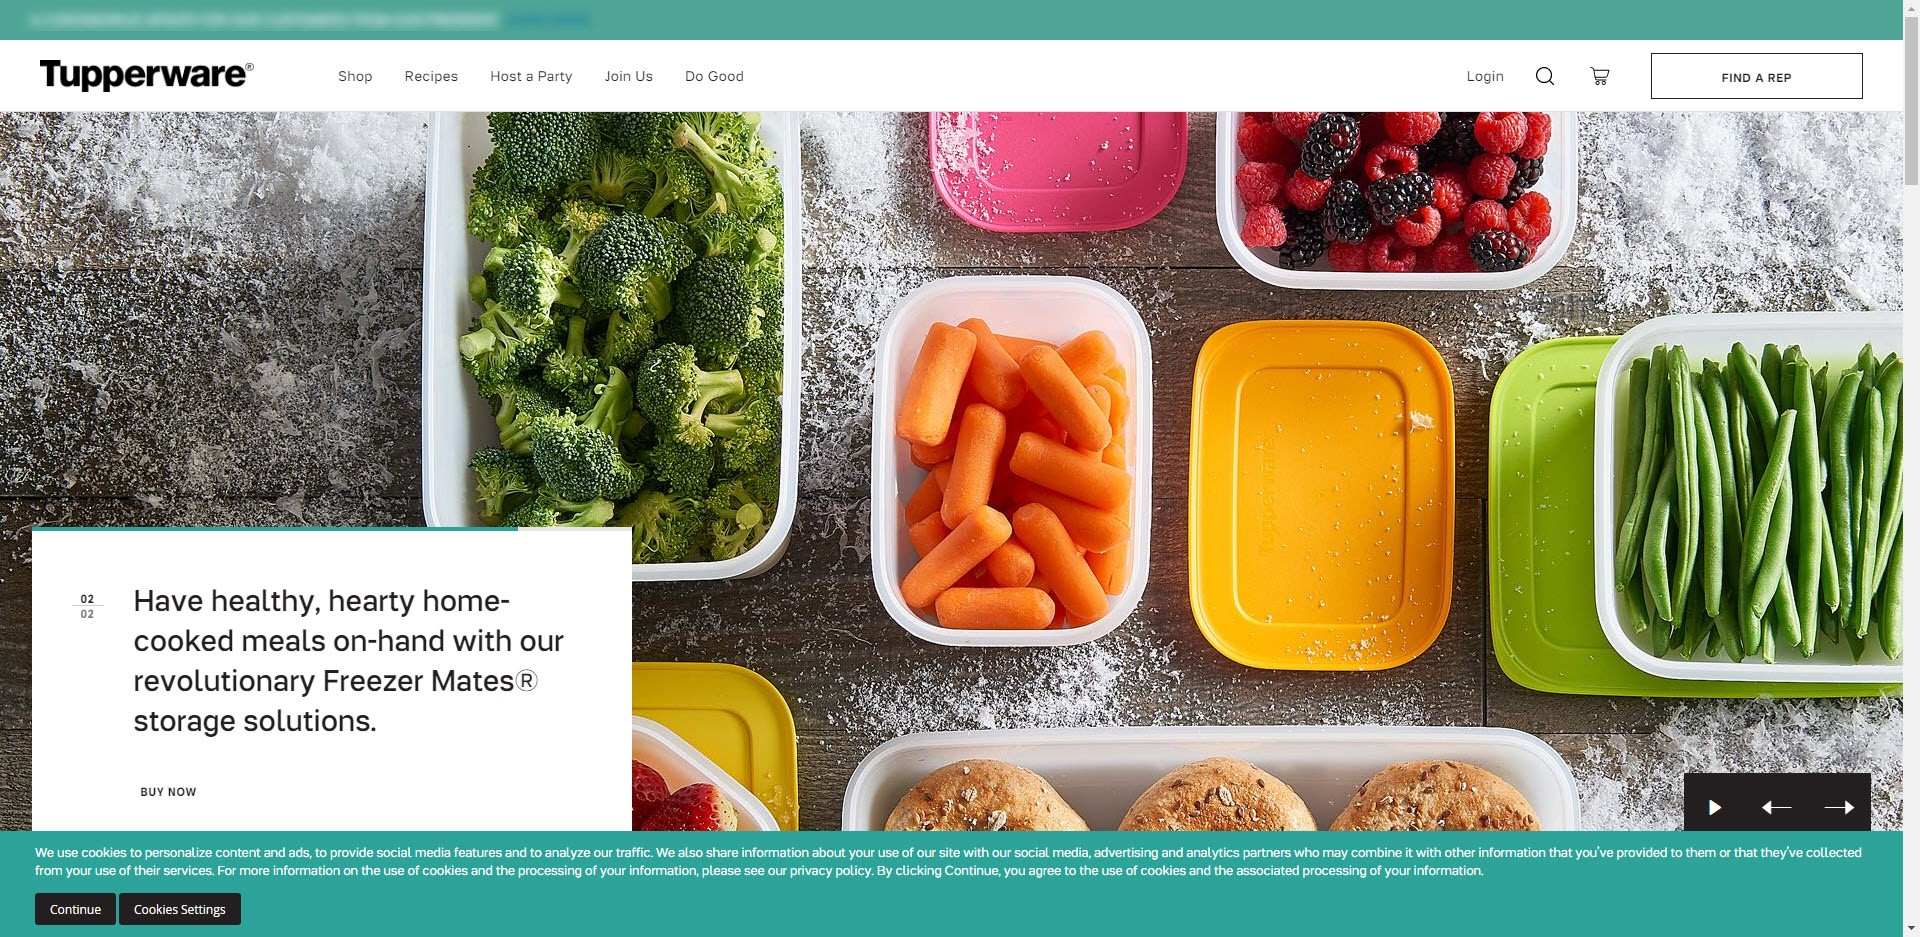 tupperware MLM Review - Home